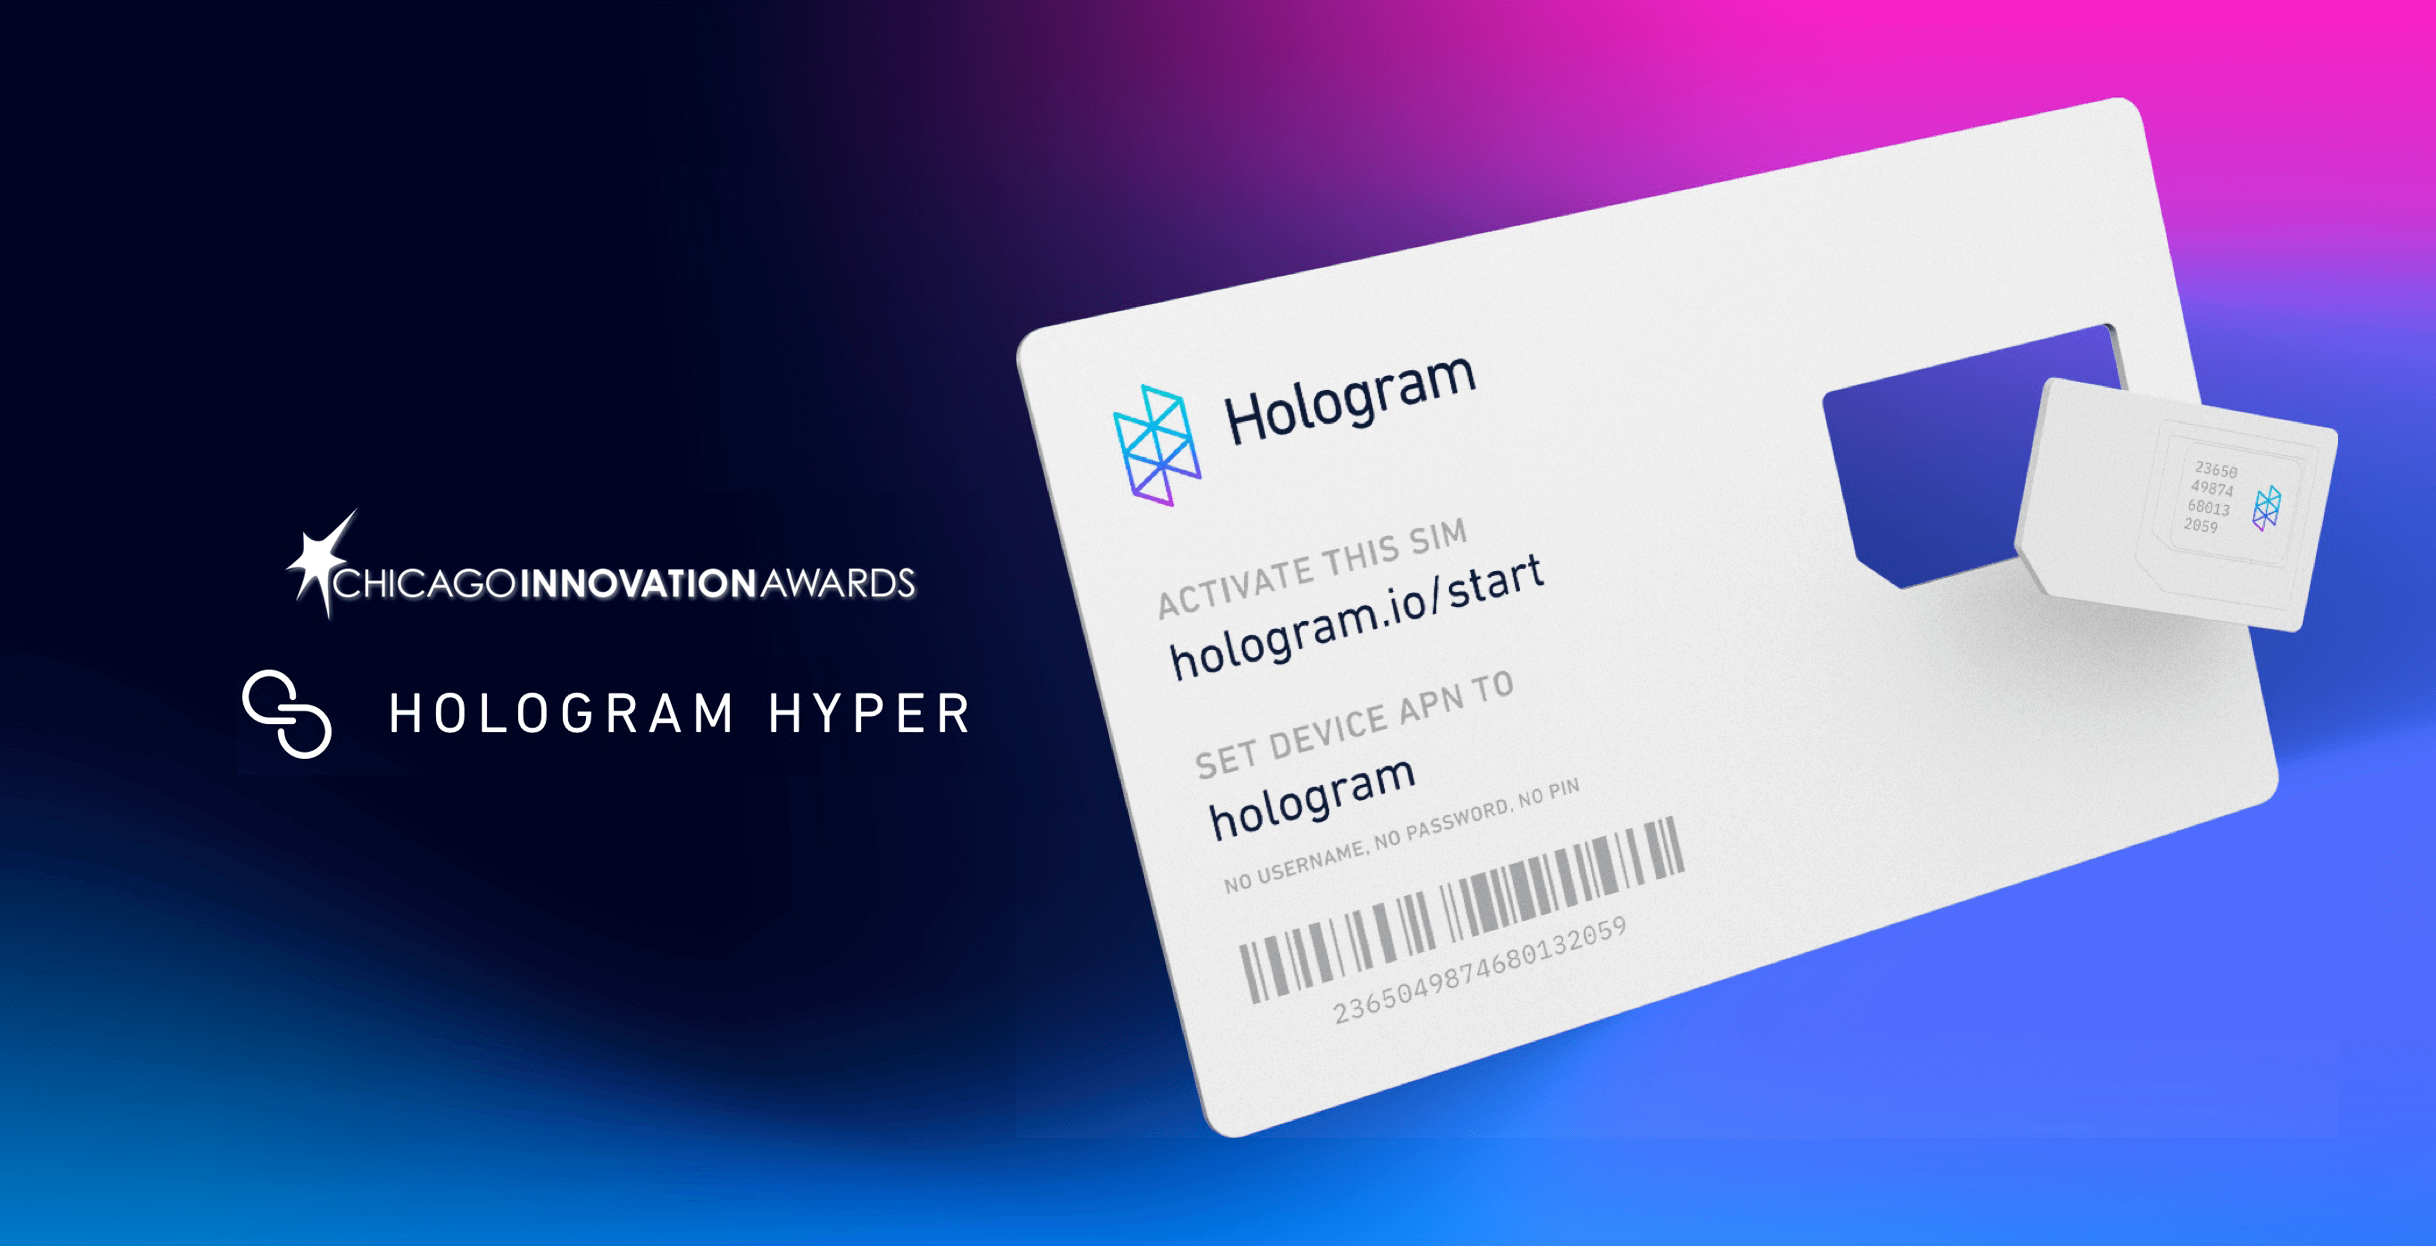 Hologram Hyper has won a Chicago Innovation Award.